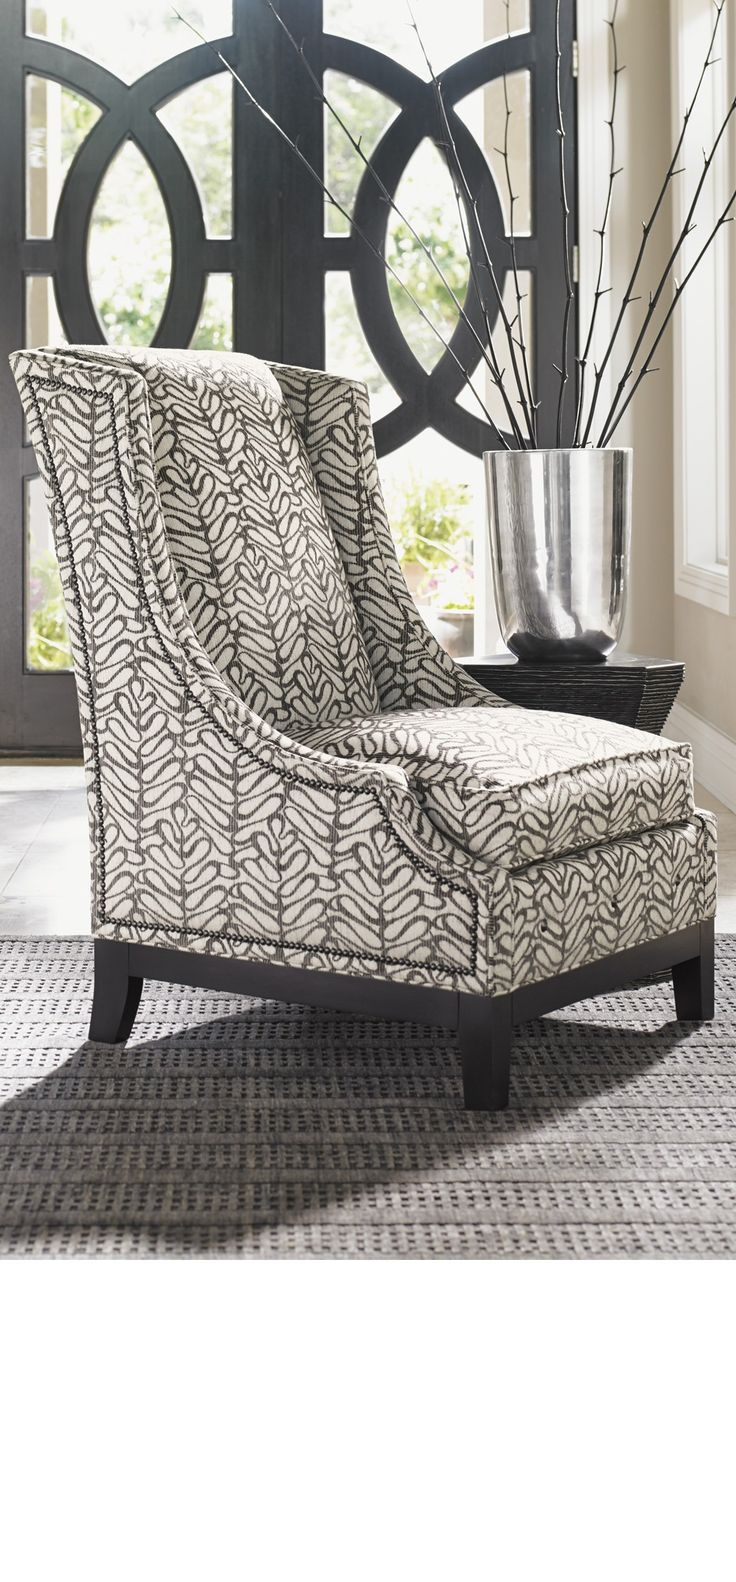 best  chairs for sale ideas only on pinterest  bedroom lounge  - lounge chairs lounge chair ideas by instyledecorcom hollywood